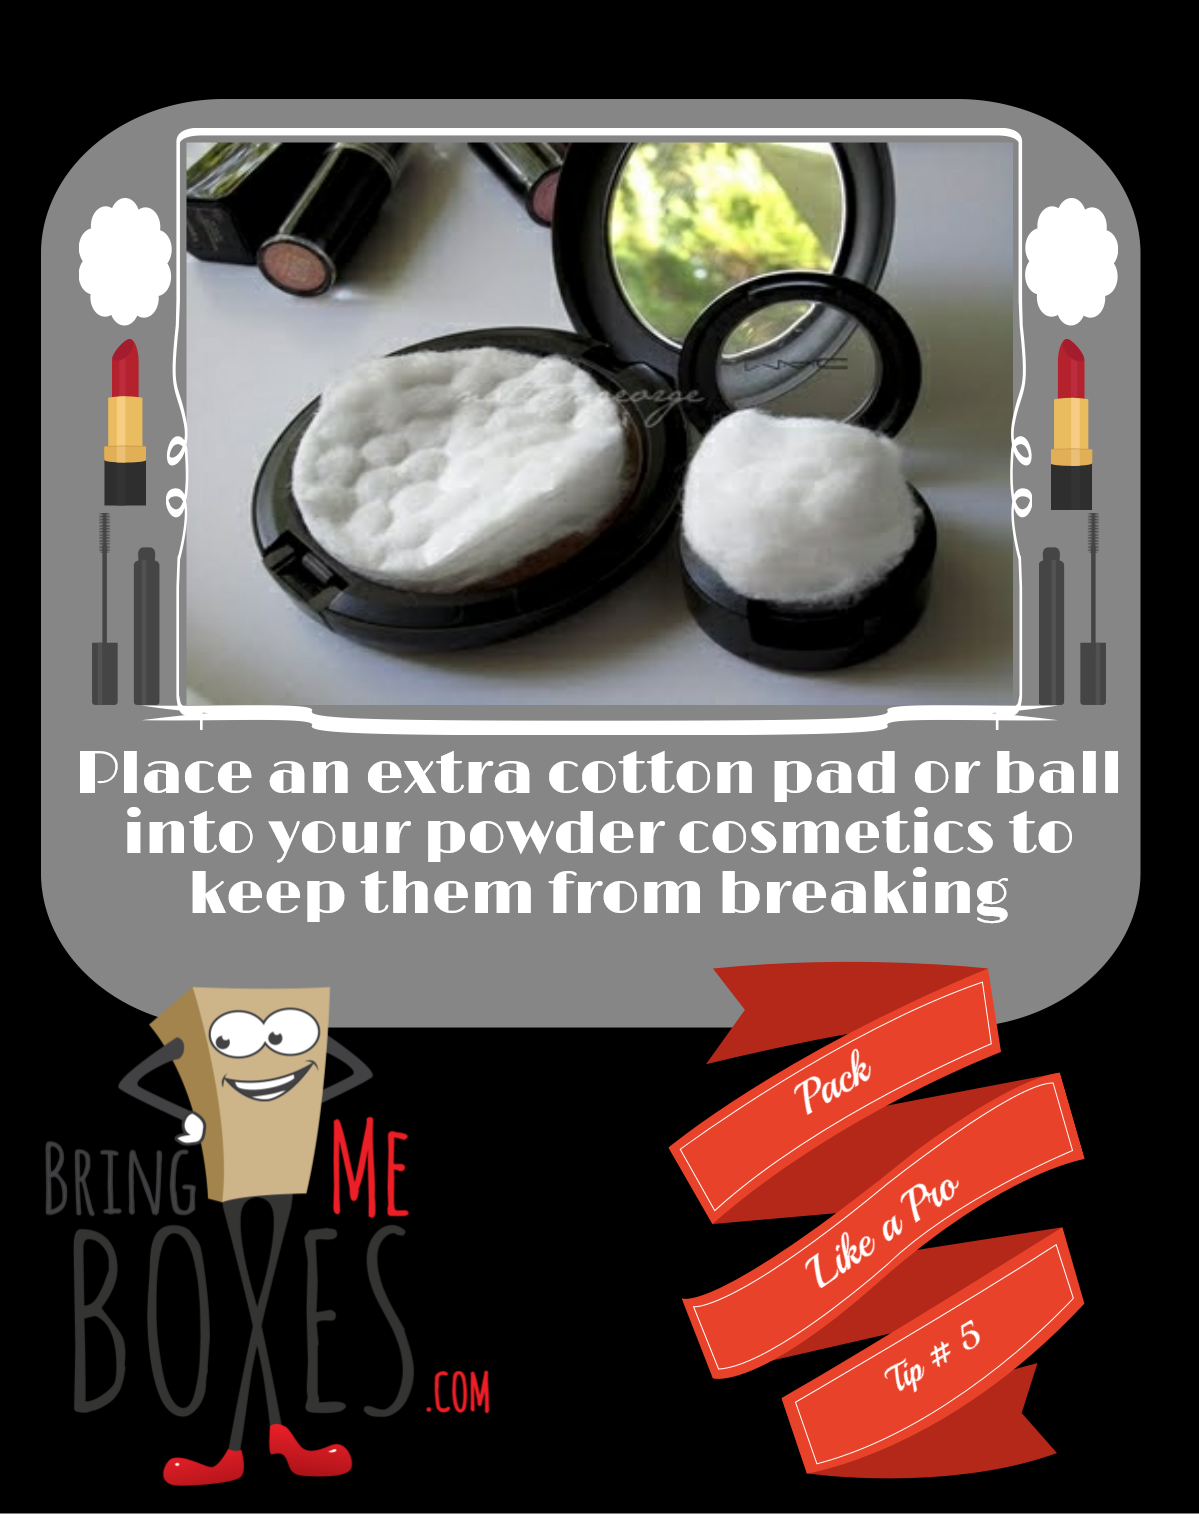 This ones for the beauties on the move!  Pack like a Pro tip #5 -  Place an extra cotton pad or ball in your compacts to avoid them from breaking.    #packlikeapro #bringmeboxes #orlando #makeuptutorials #makeuptips #moving #move #movingday #pack #compact  #Makeupfix #makeup #beauty #pretty #Mac #macmakeup #repair #tips #lifehacks